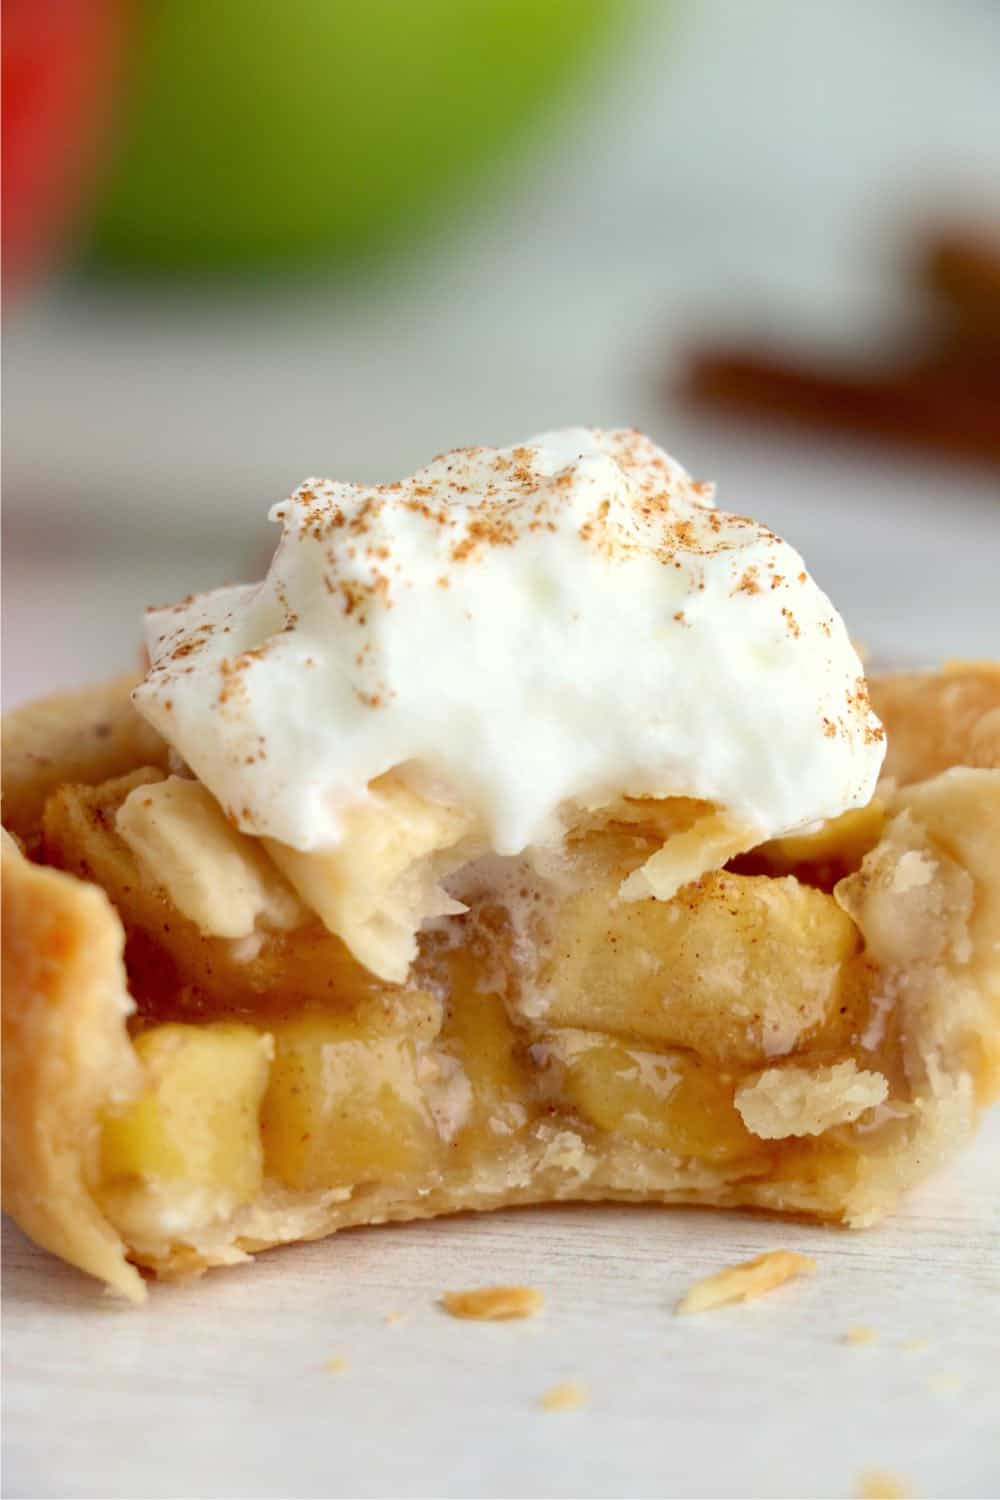 Mini apple pie with whipped cream on top